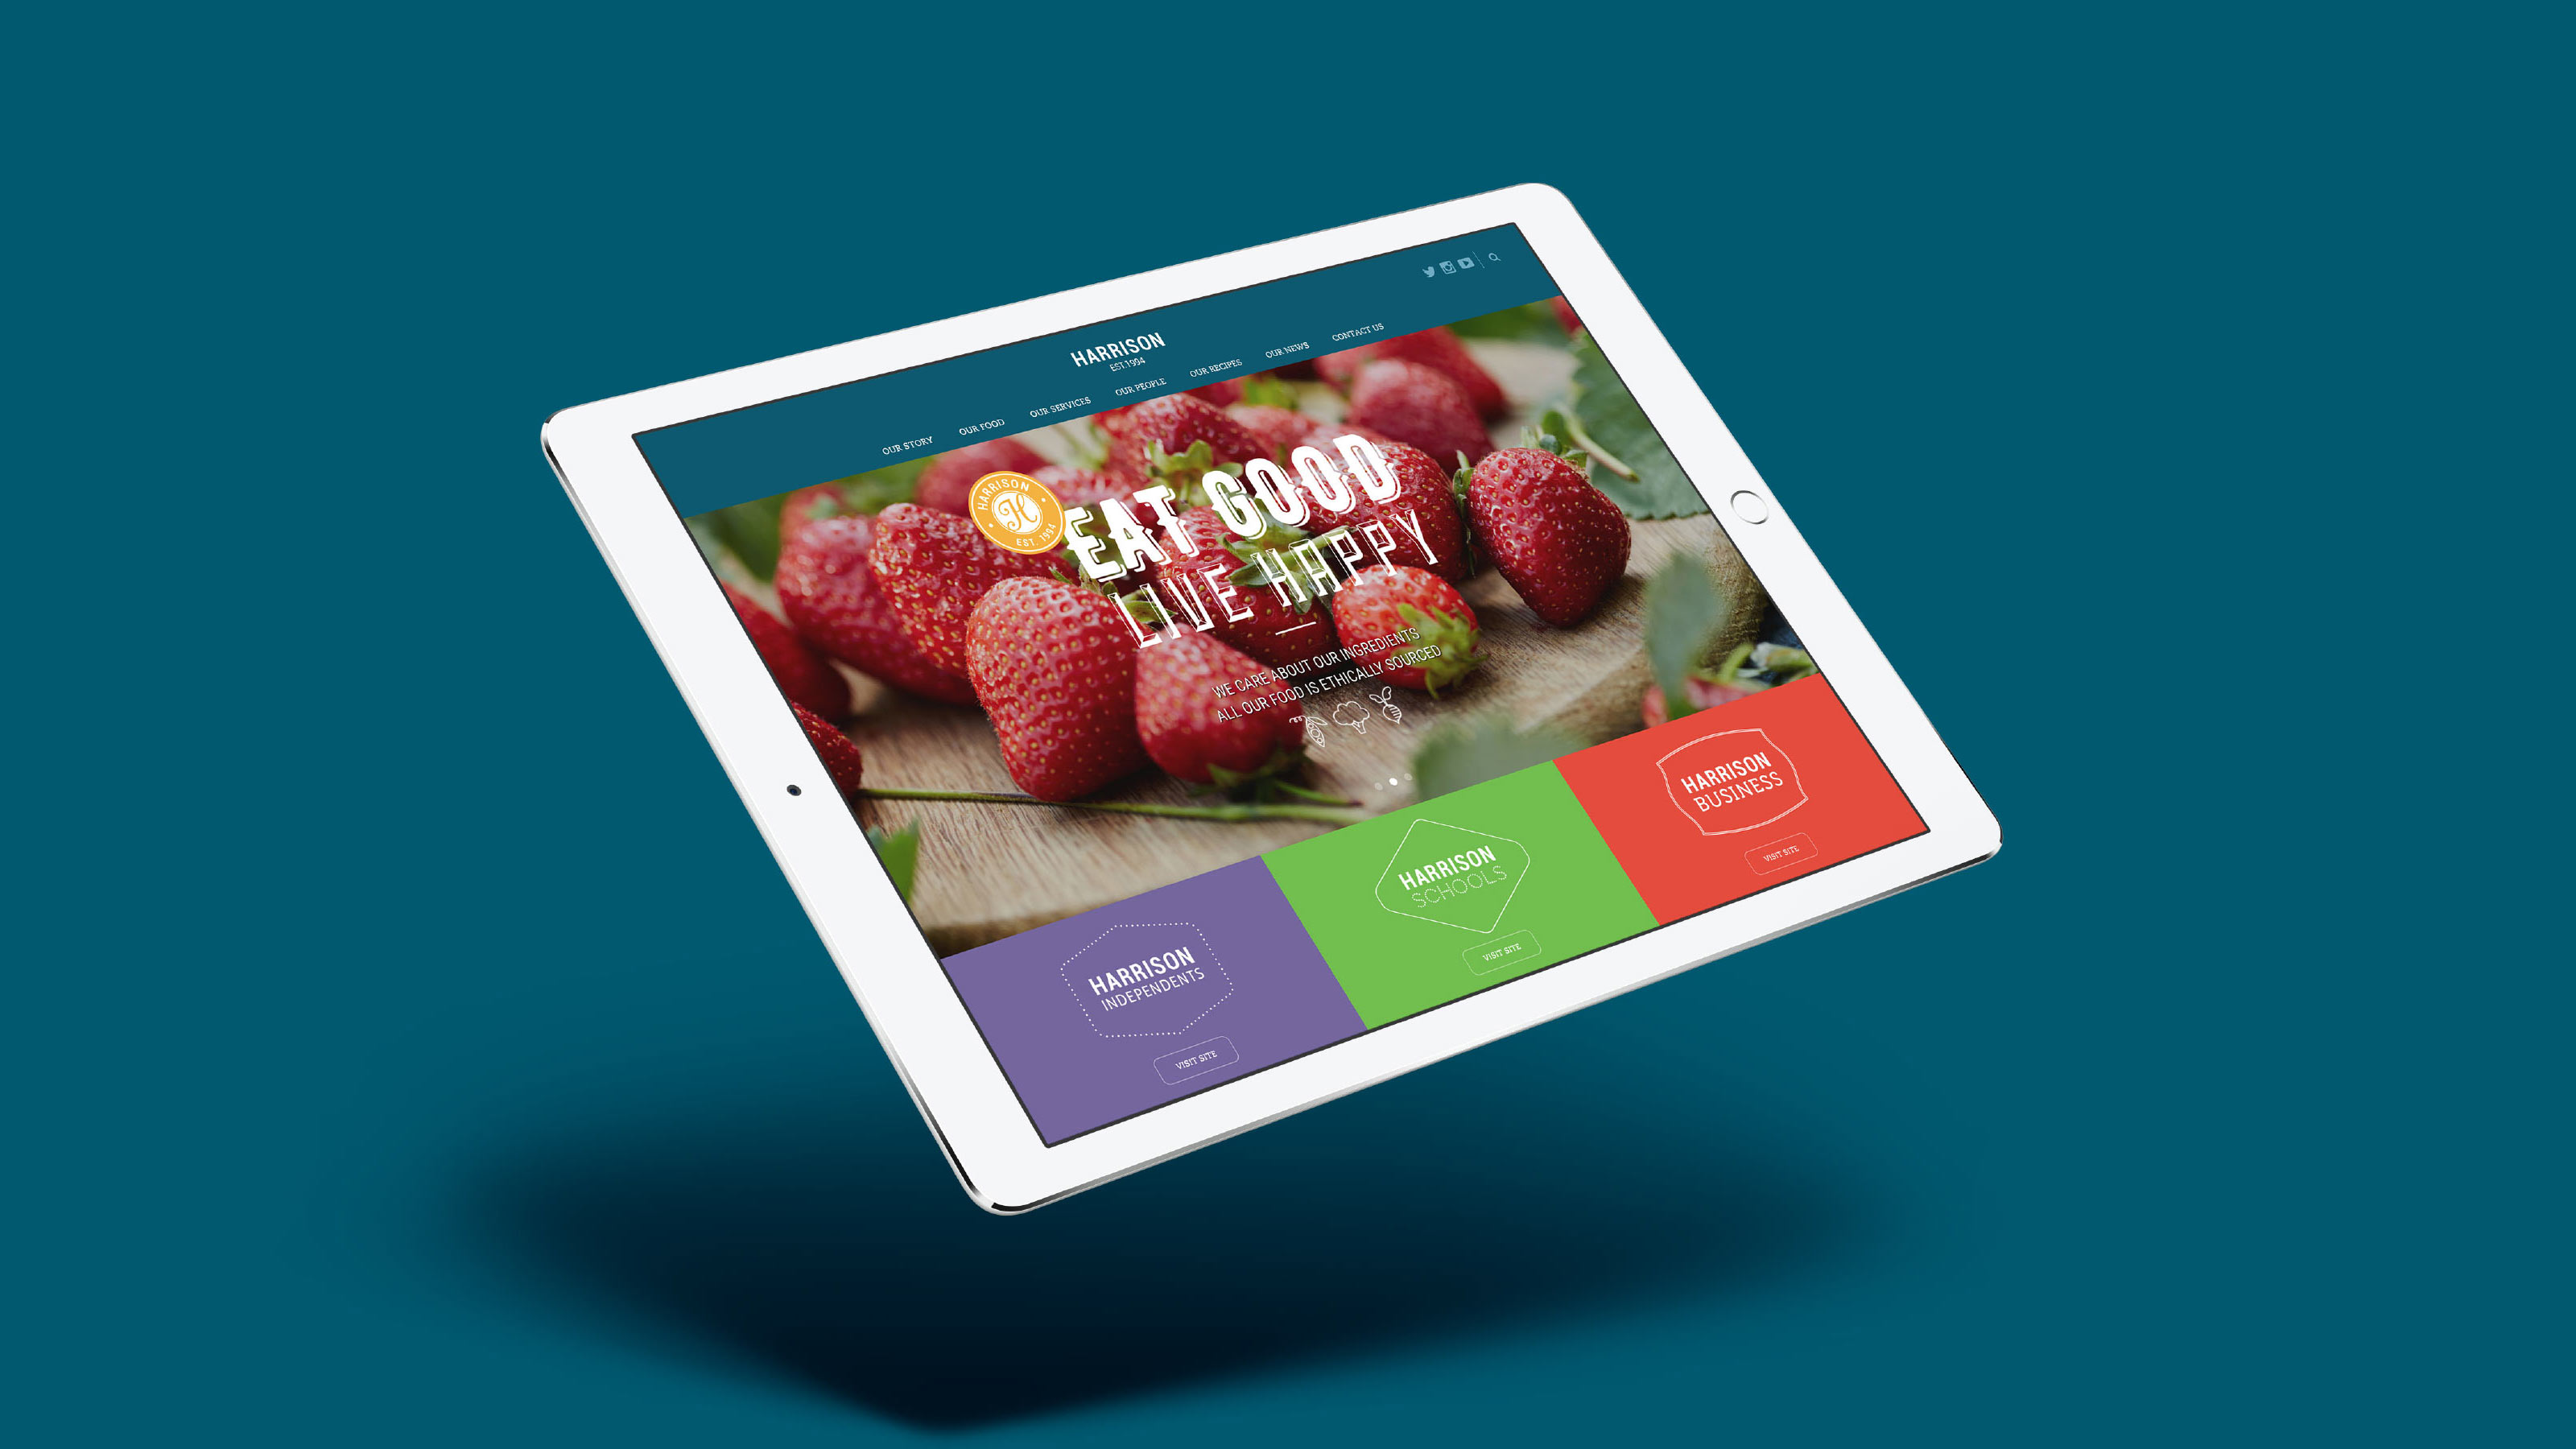 Harrison Brand tablet website design